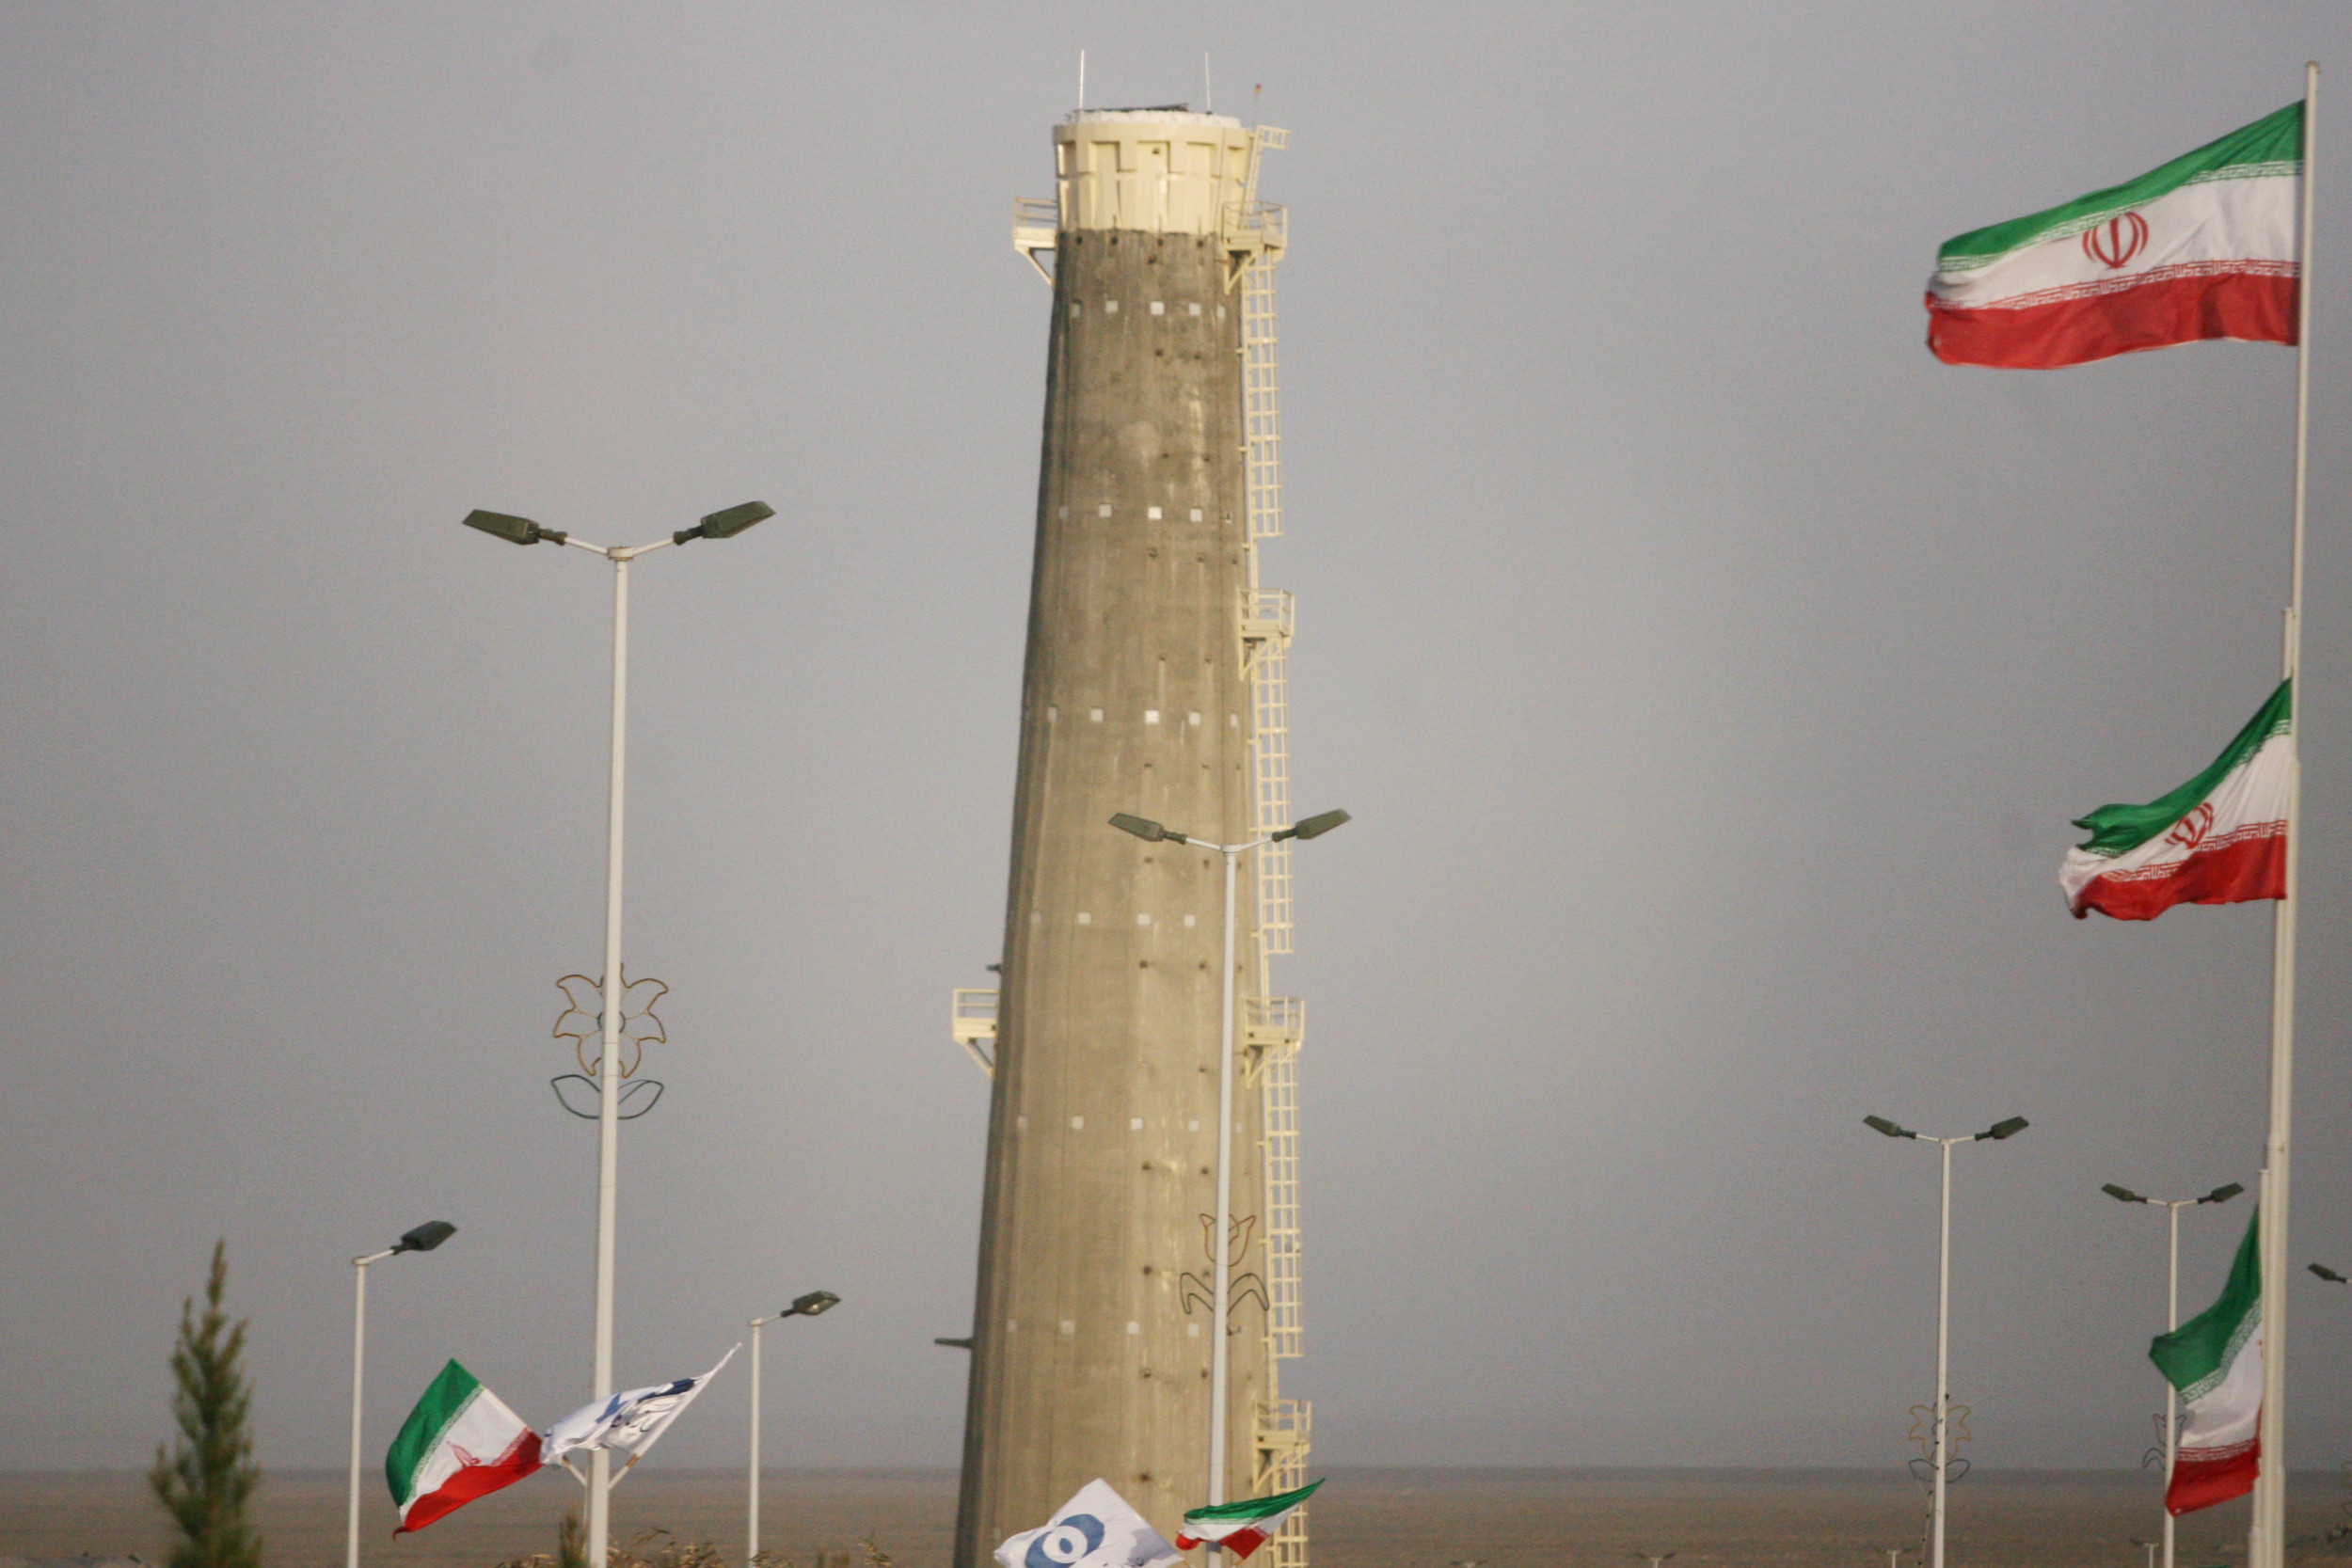 Iran explosions: The main suspects